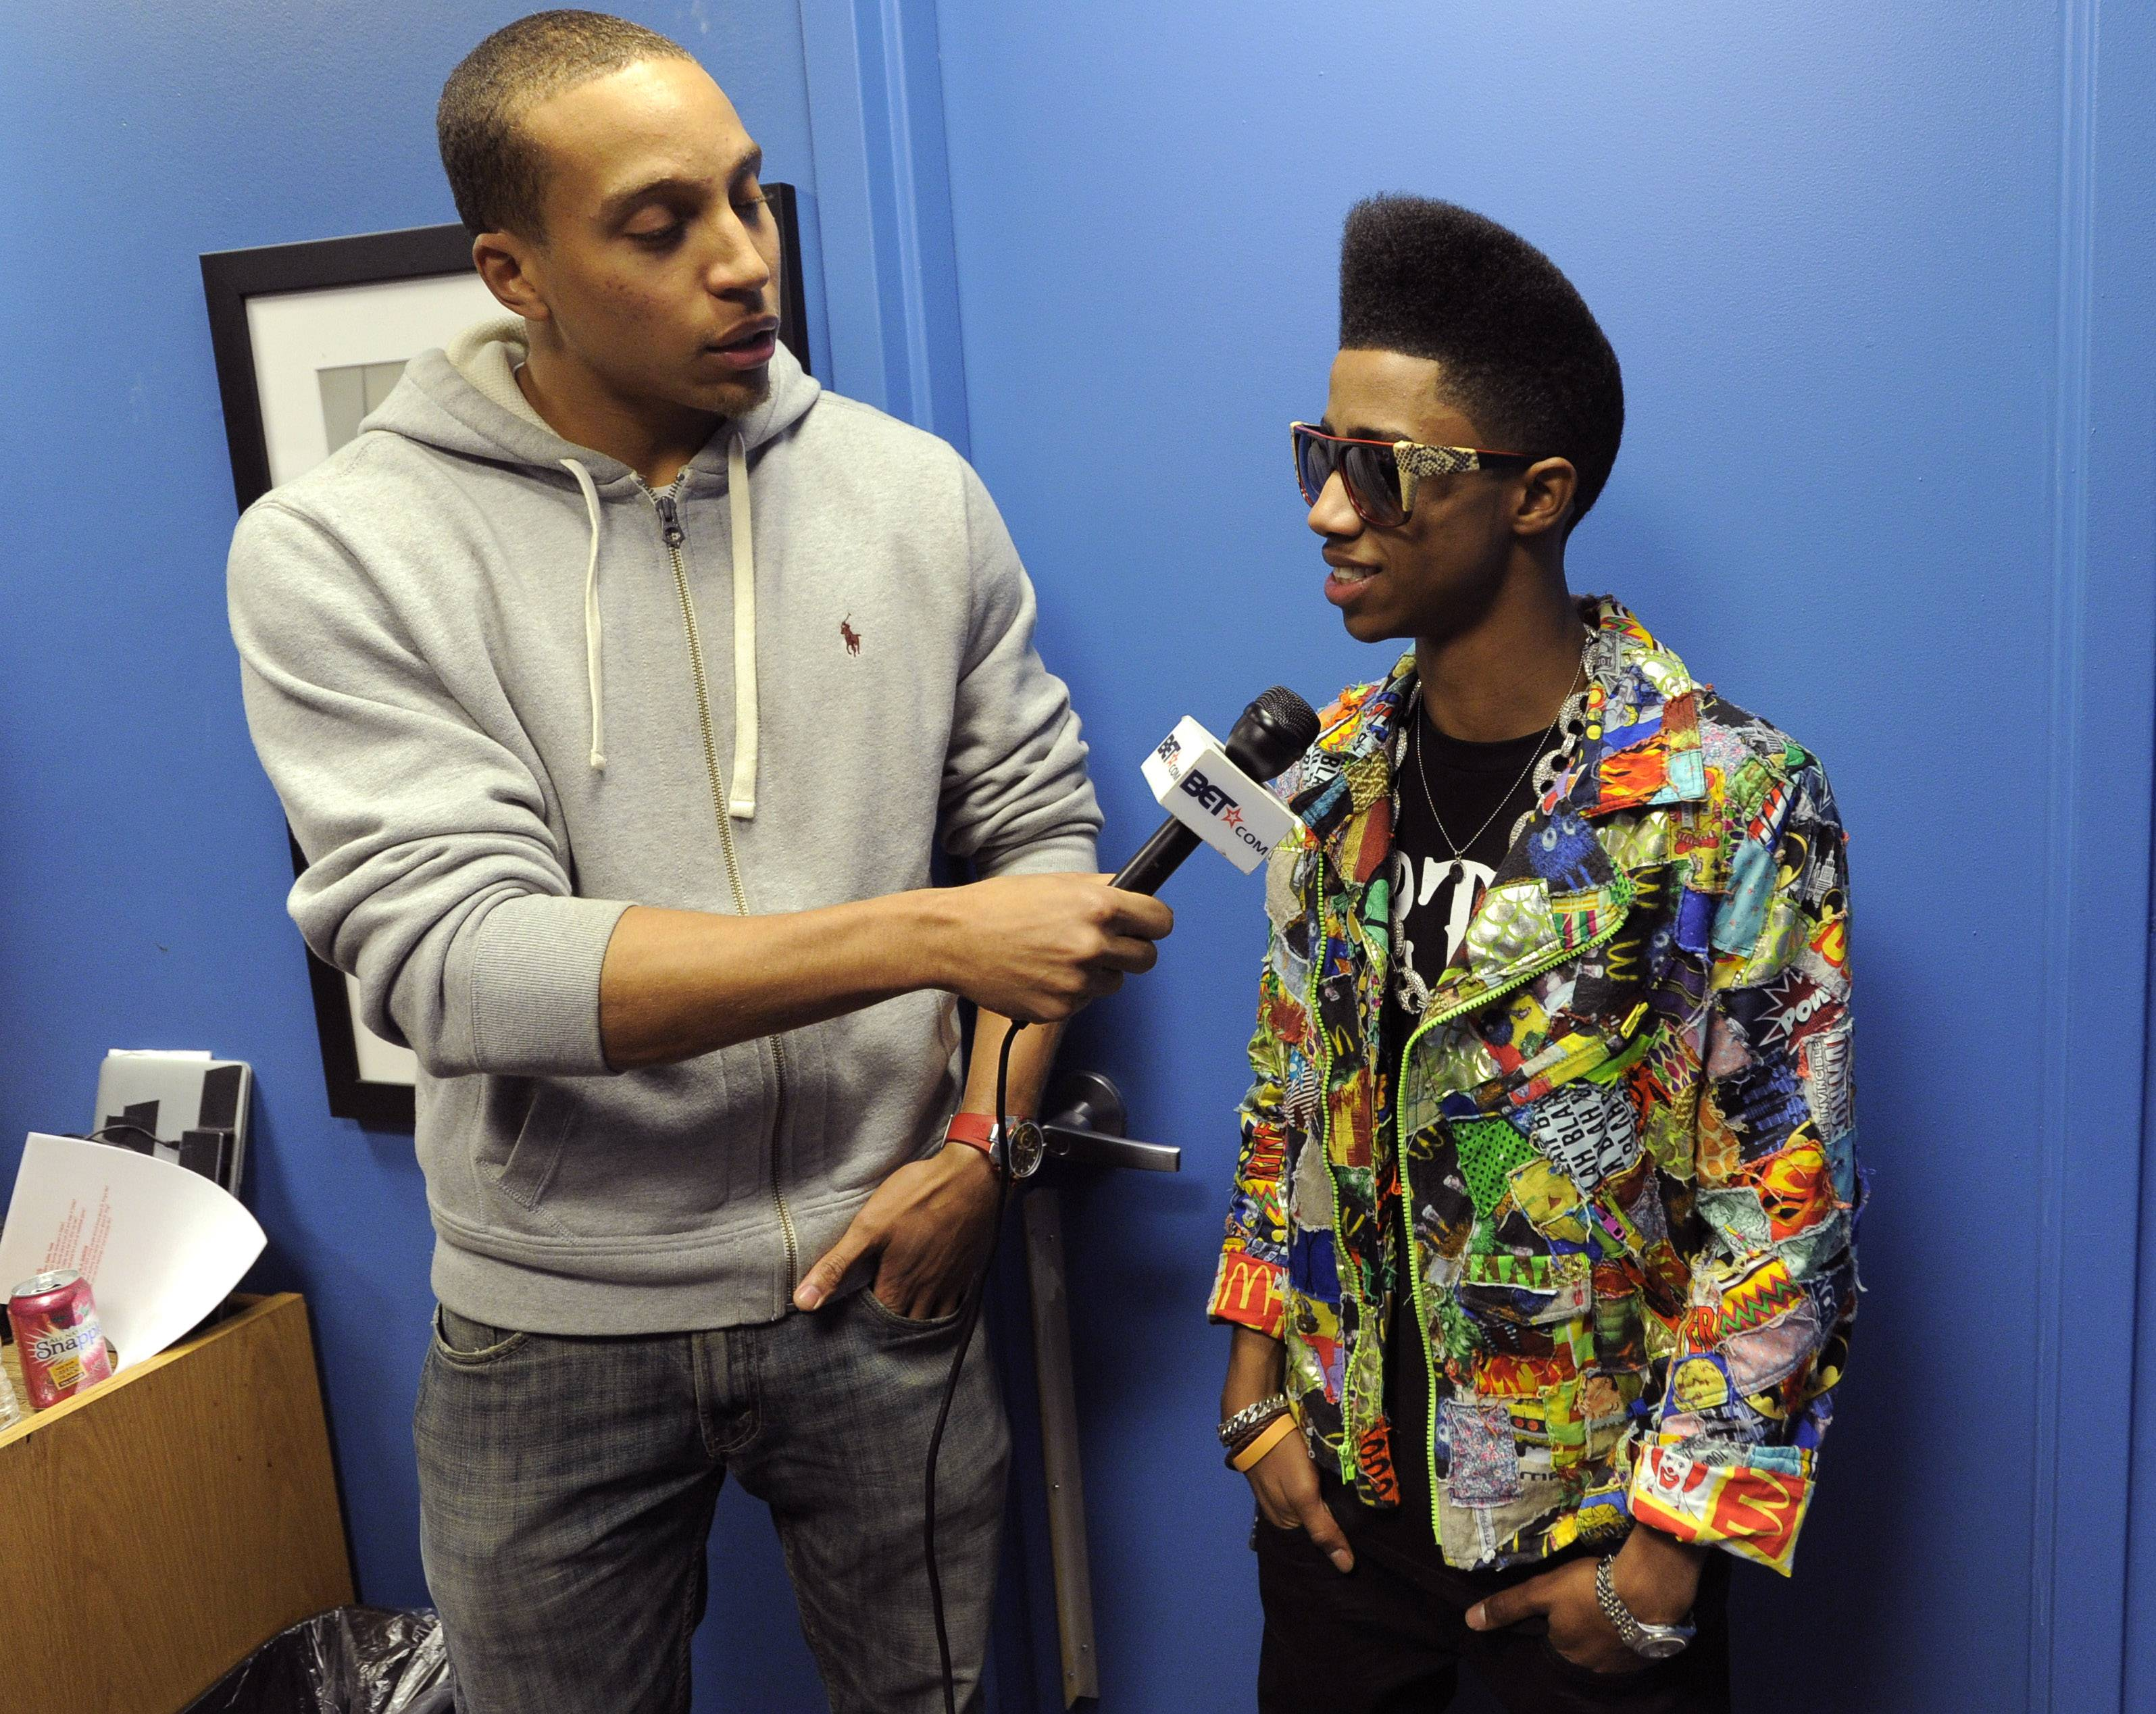 Nice Shades - Lil Twist talks to Tony Anderson of BET.com in the green room at 106 & Park, January 05, 2012.(Photo: John Ricard/BET)